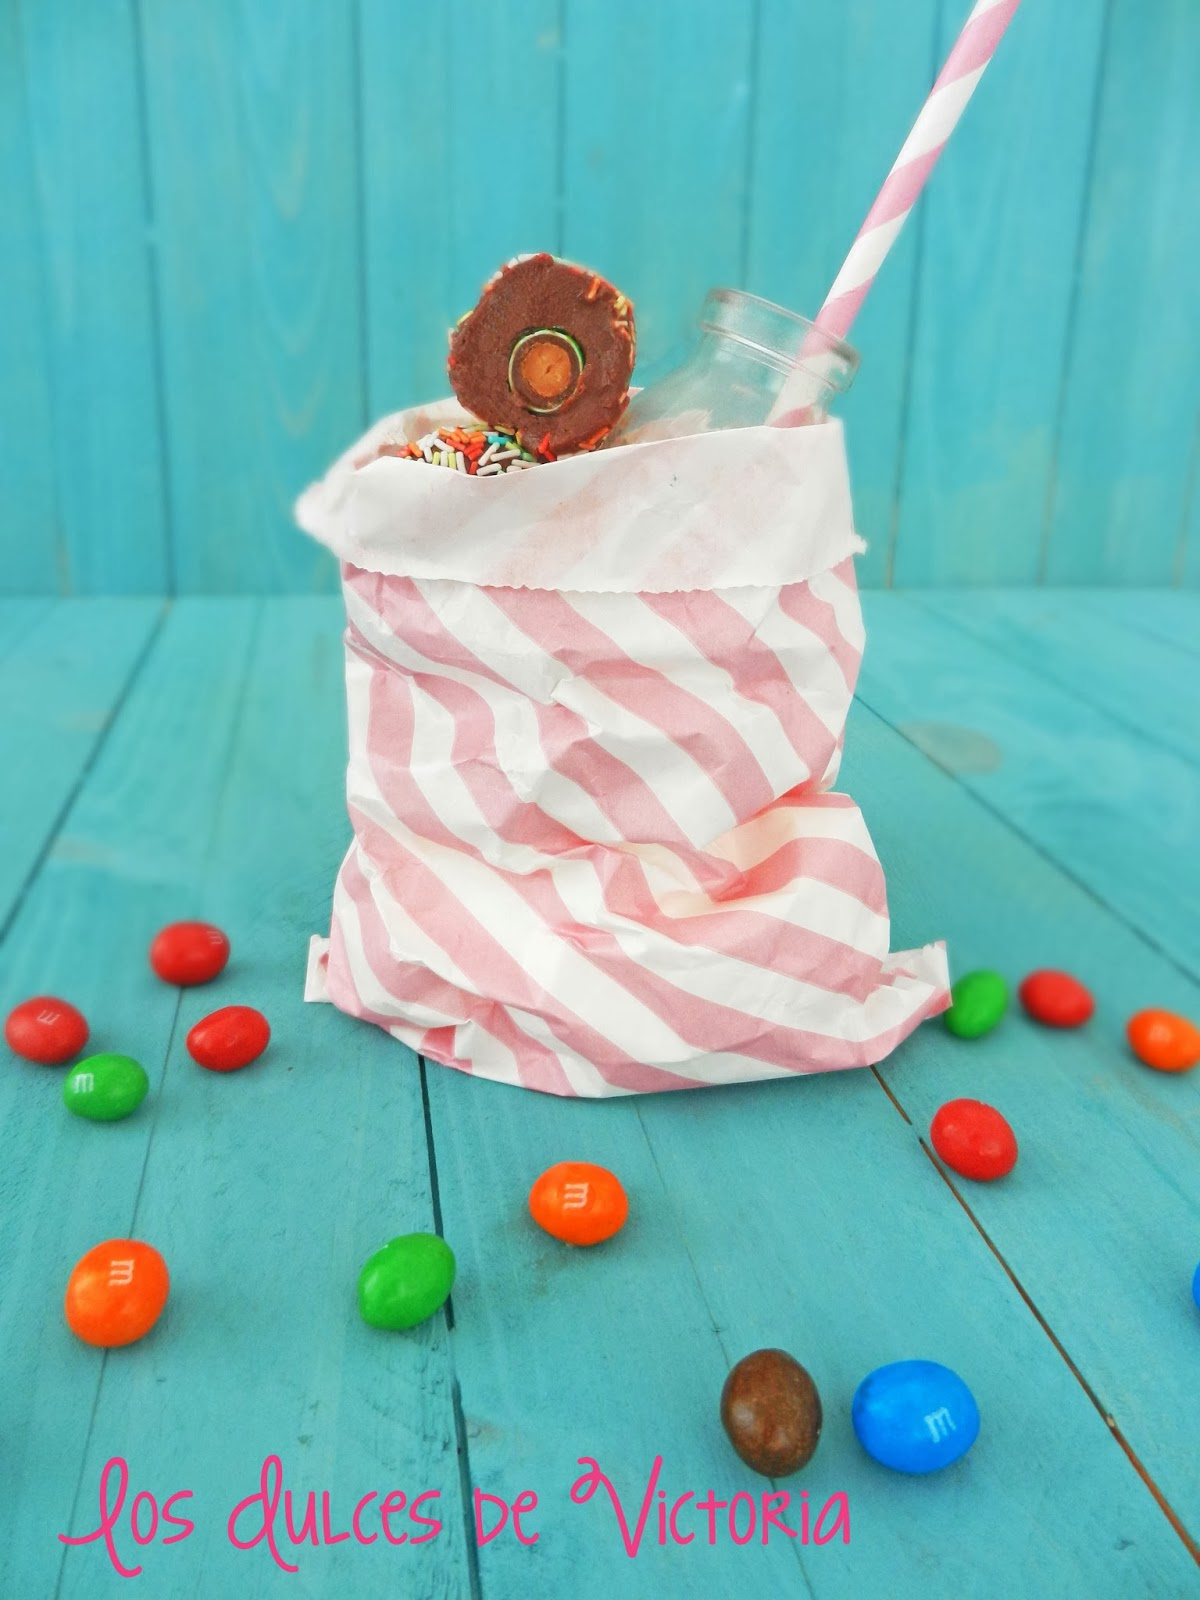 trufas de chocolate con M&M's